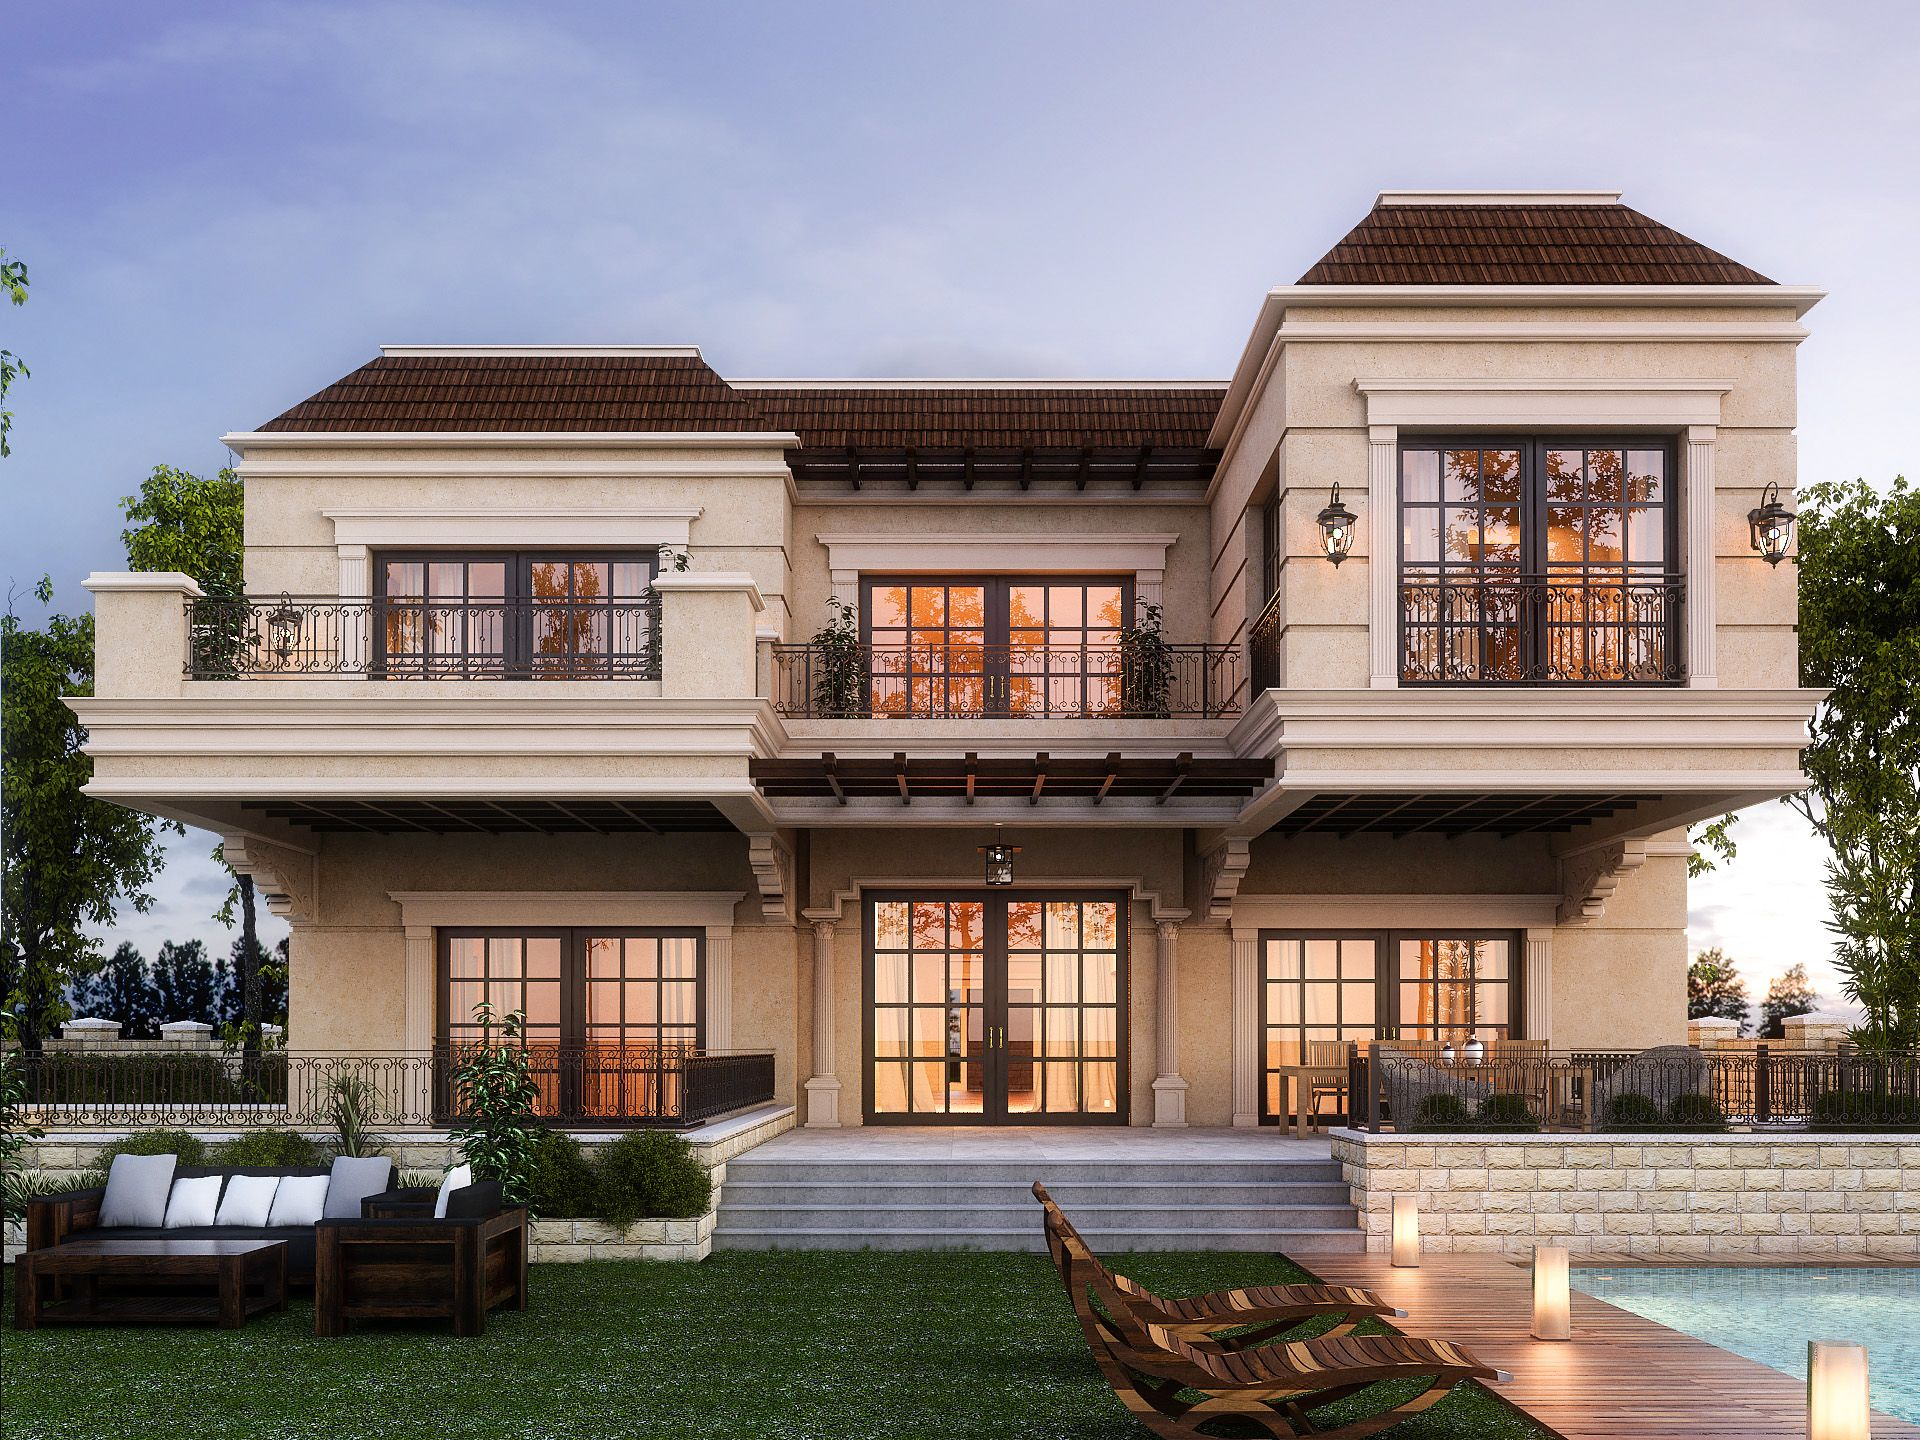 Lake View Villa - Redesign Existing Elevations